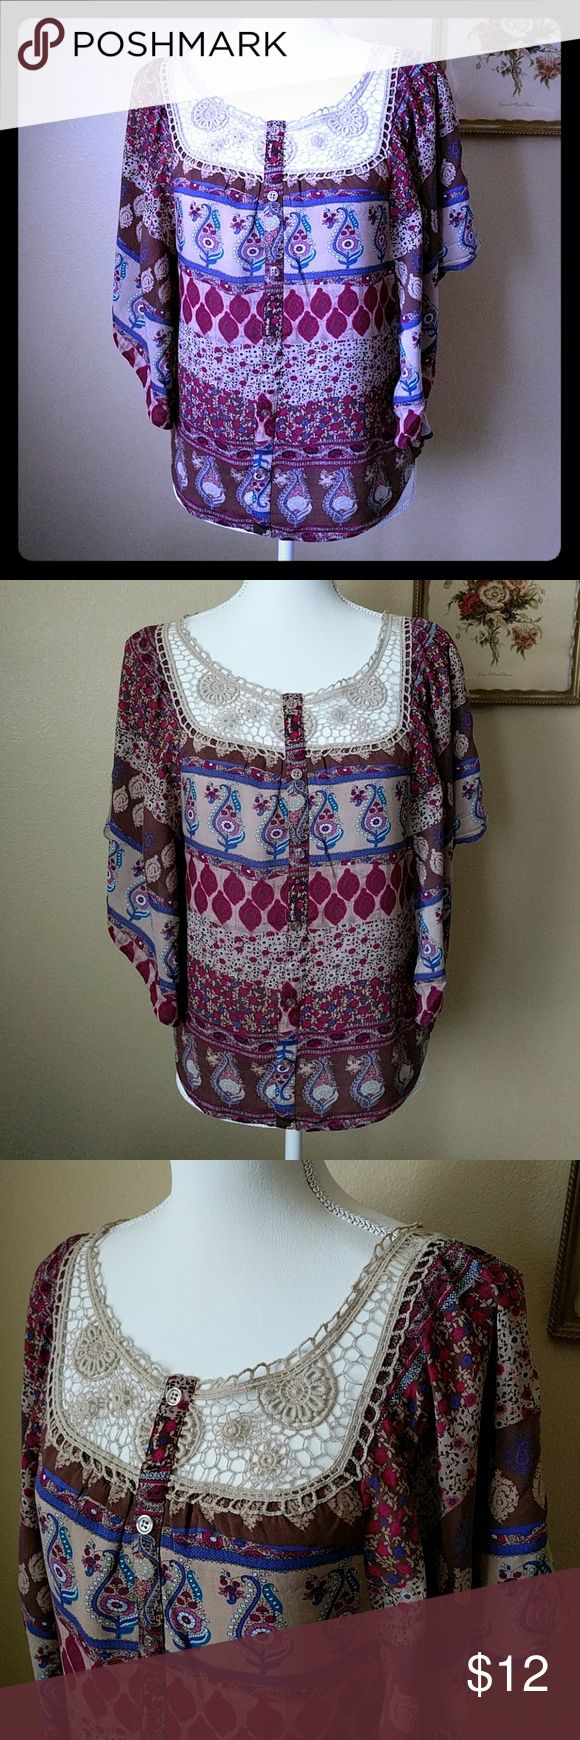 Juniors XS Floral Crochet Boho Paisley Top Beautiful Paisley Floral top in magenta, purples and brown tones with batwings. Gorgeous crochet detail. Very gently worn, like new. Full Tilt Tops Blouses